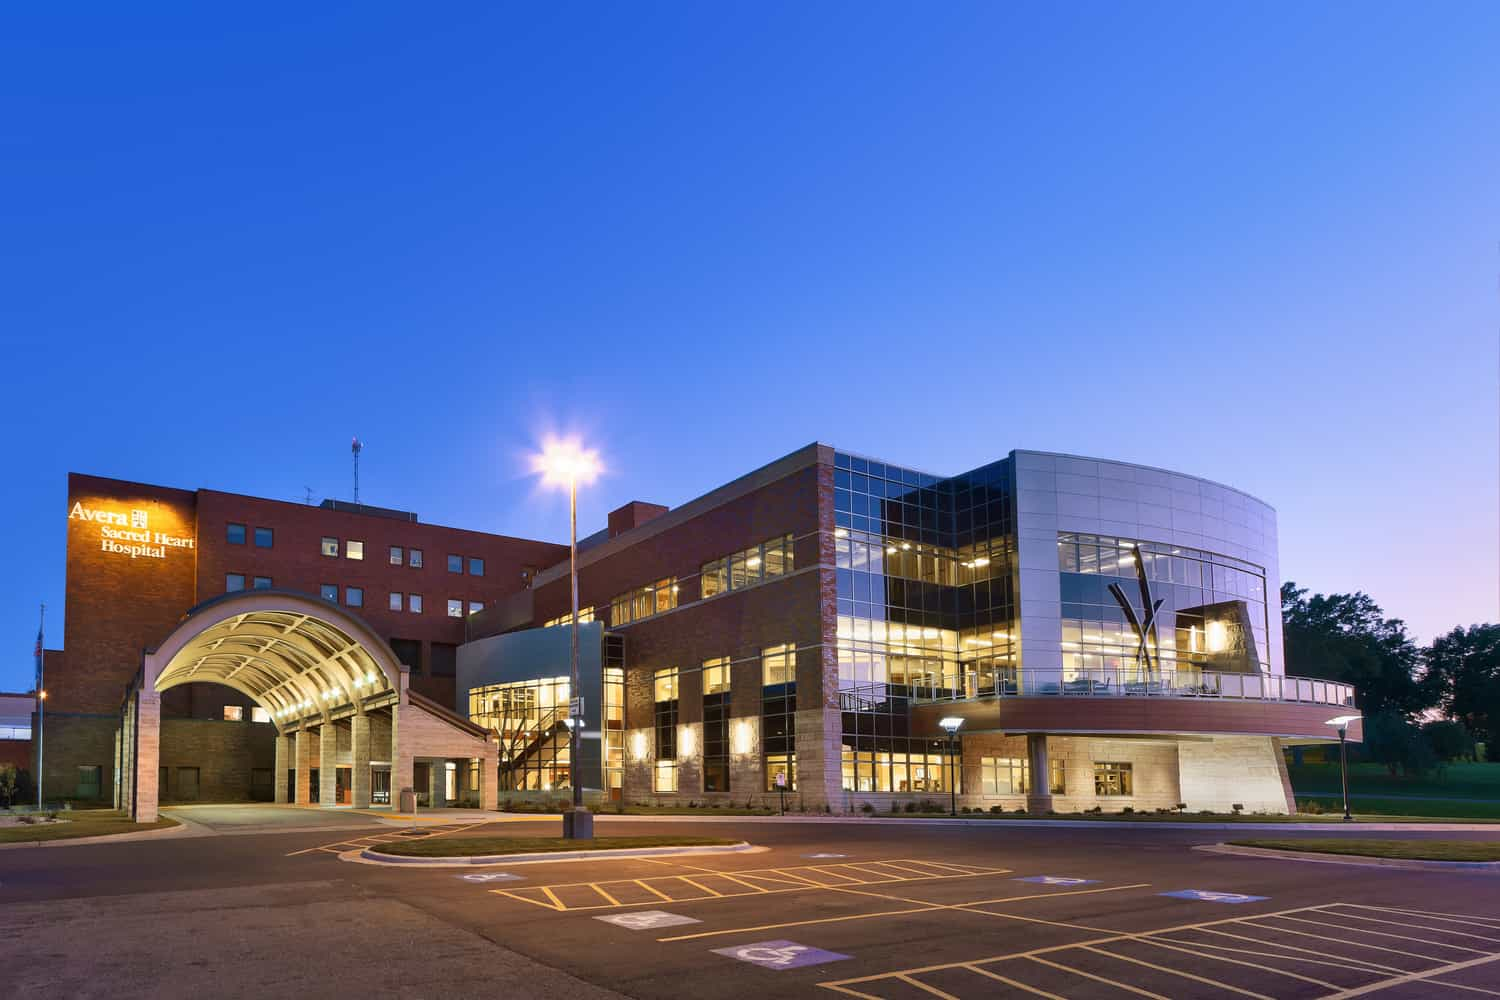 AVERA SACRED HEART HOSPITAL NORTHERN LIGHTS EXPANSION